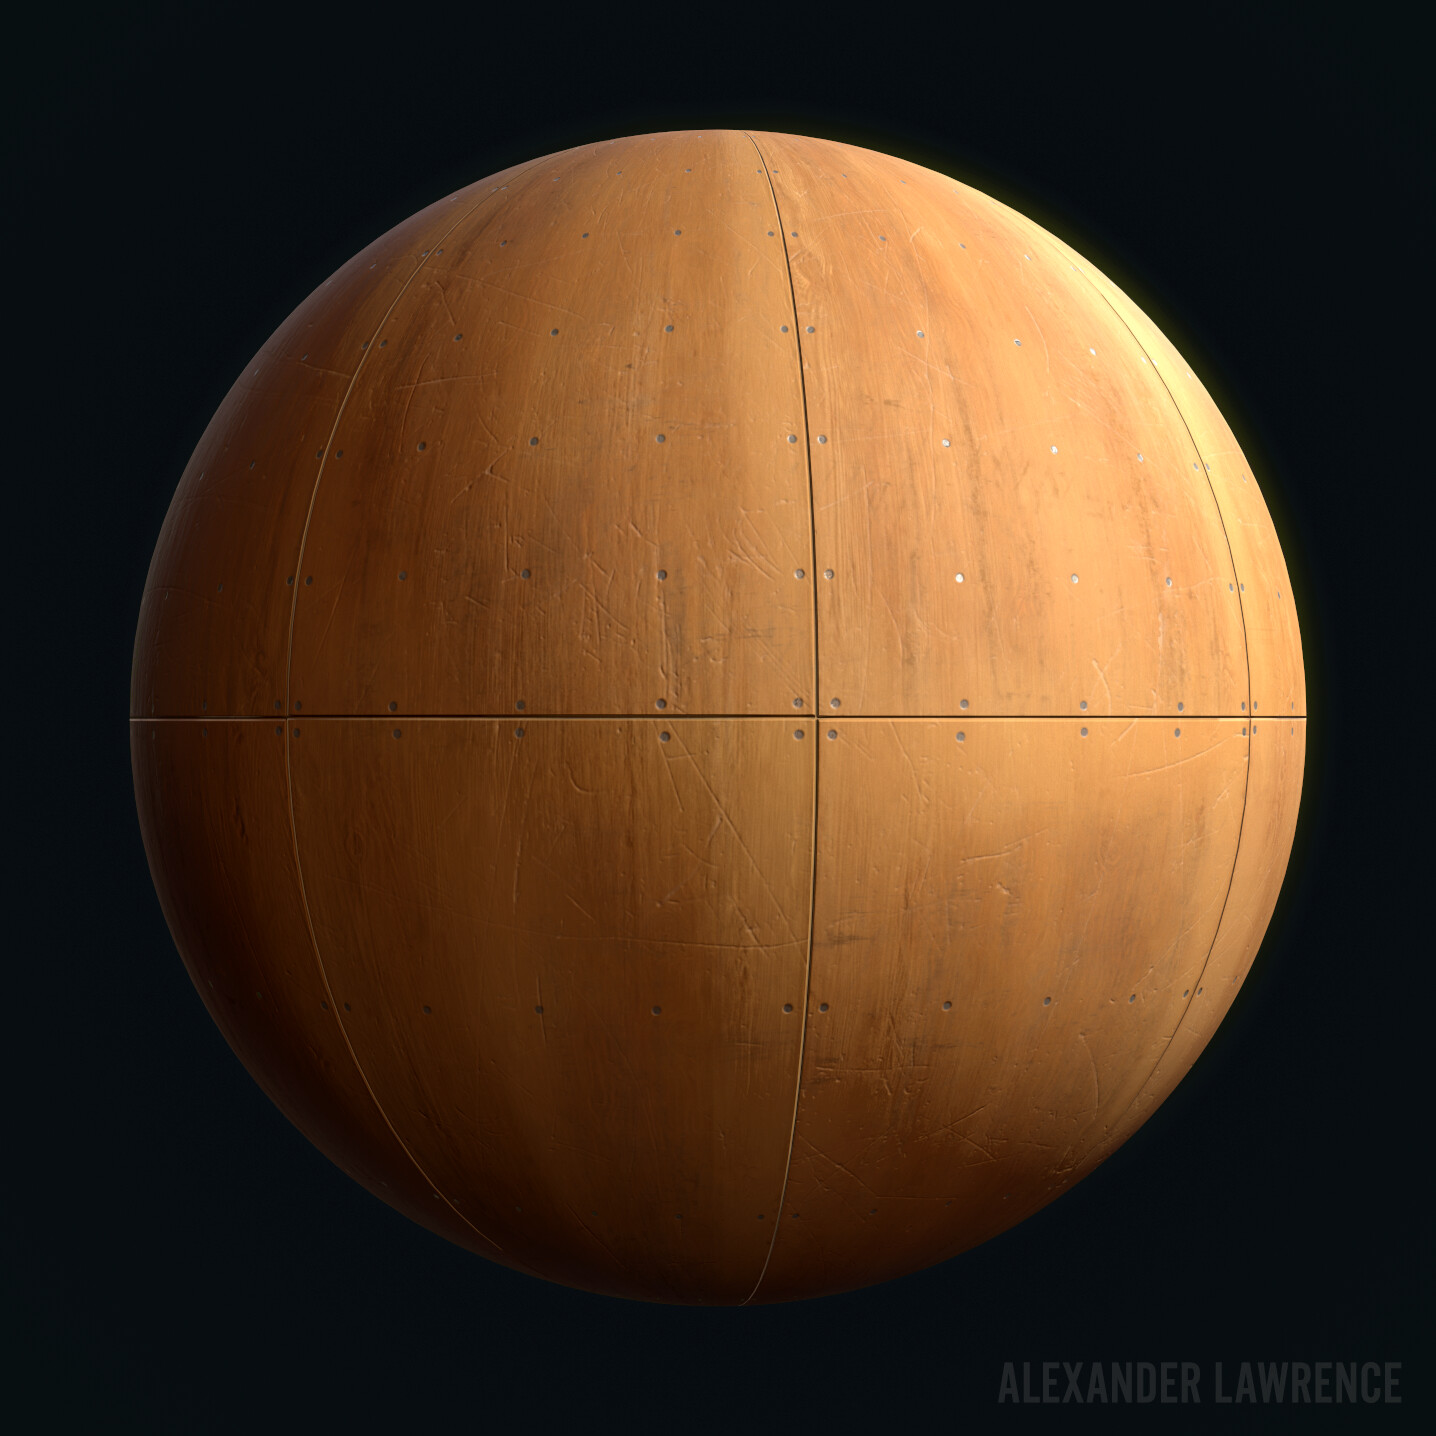 This is one of two bare wood floor materials used on the ramp. Procedurally generated in Substance Designer.